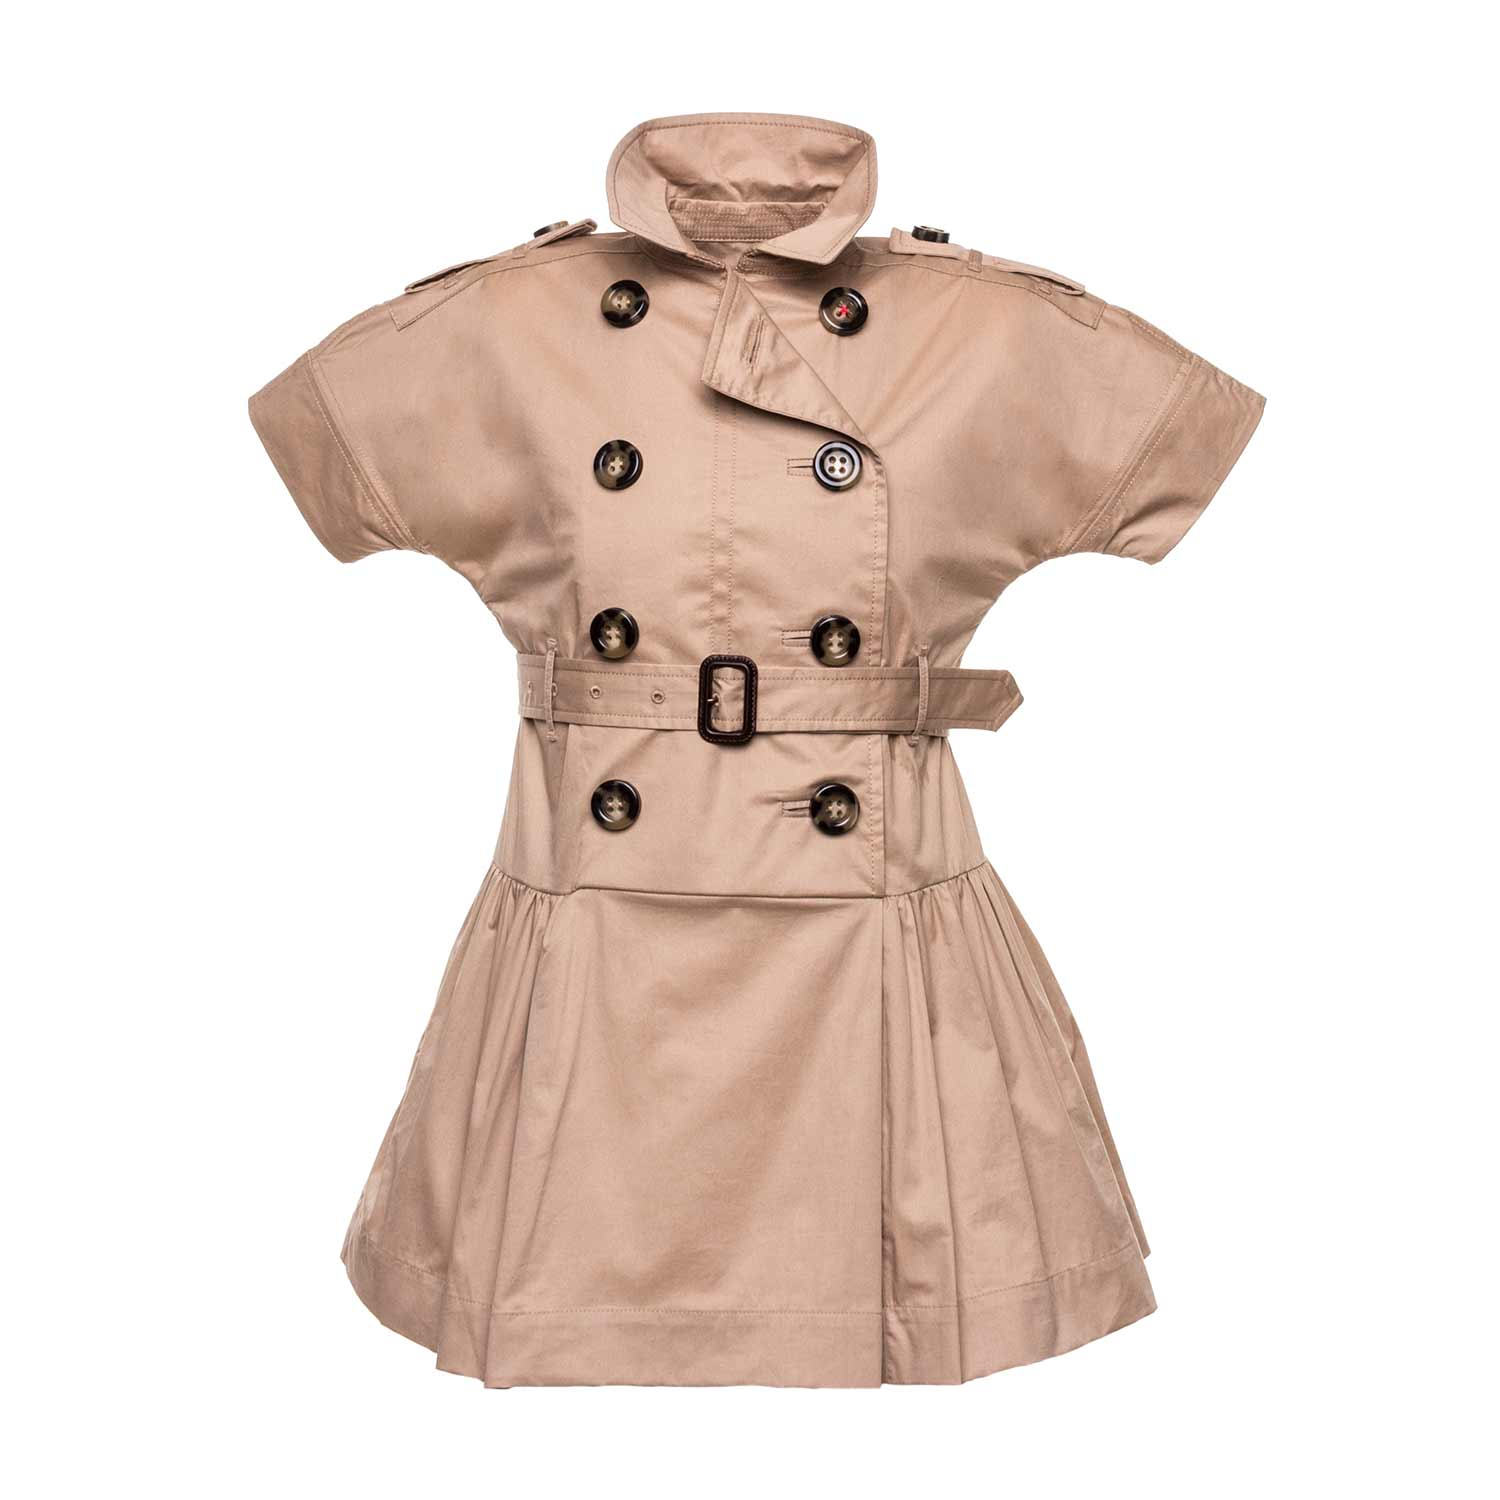 10847cdbd Home · BURBERRY · Dresses long tops; Cotton Trench Dress For Girls.  27700-burberry_abito_trench_bambina_teenager-1.jpg